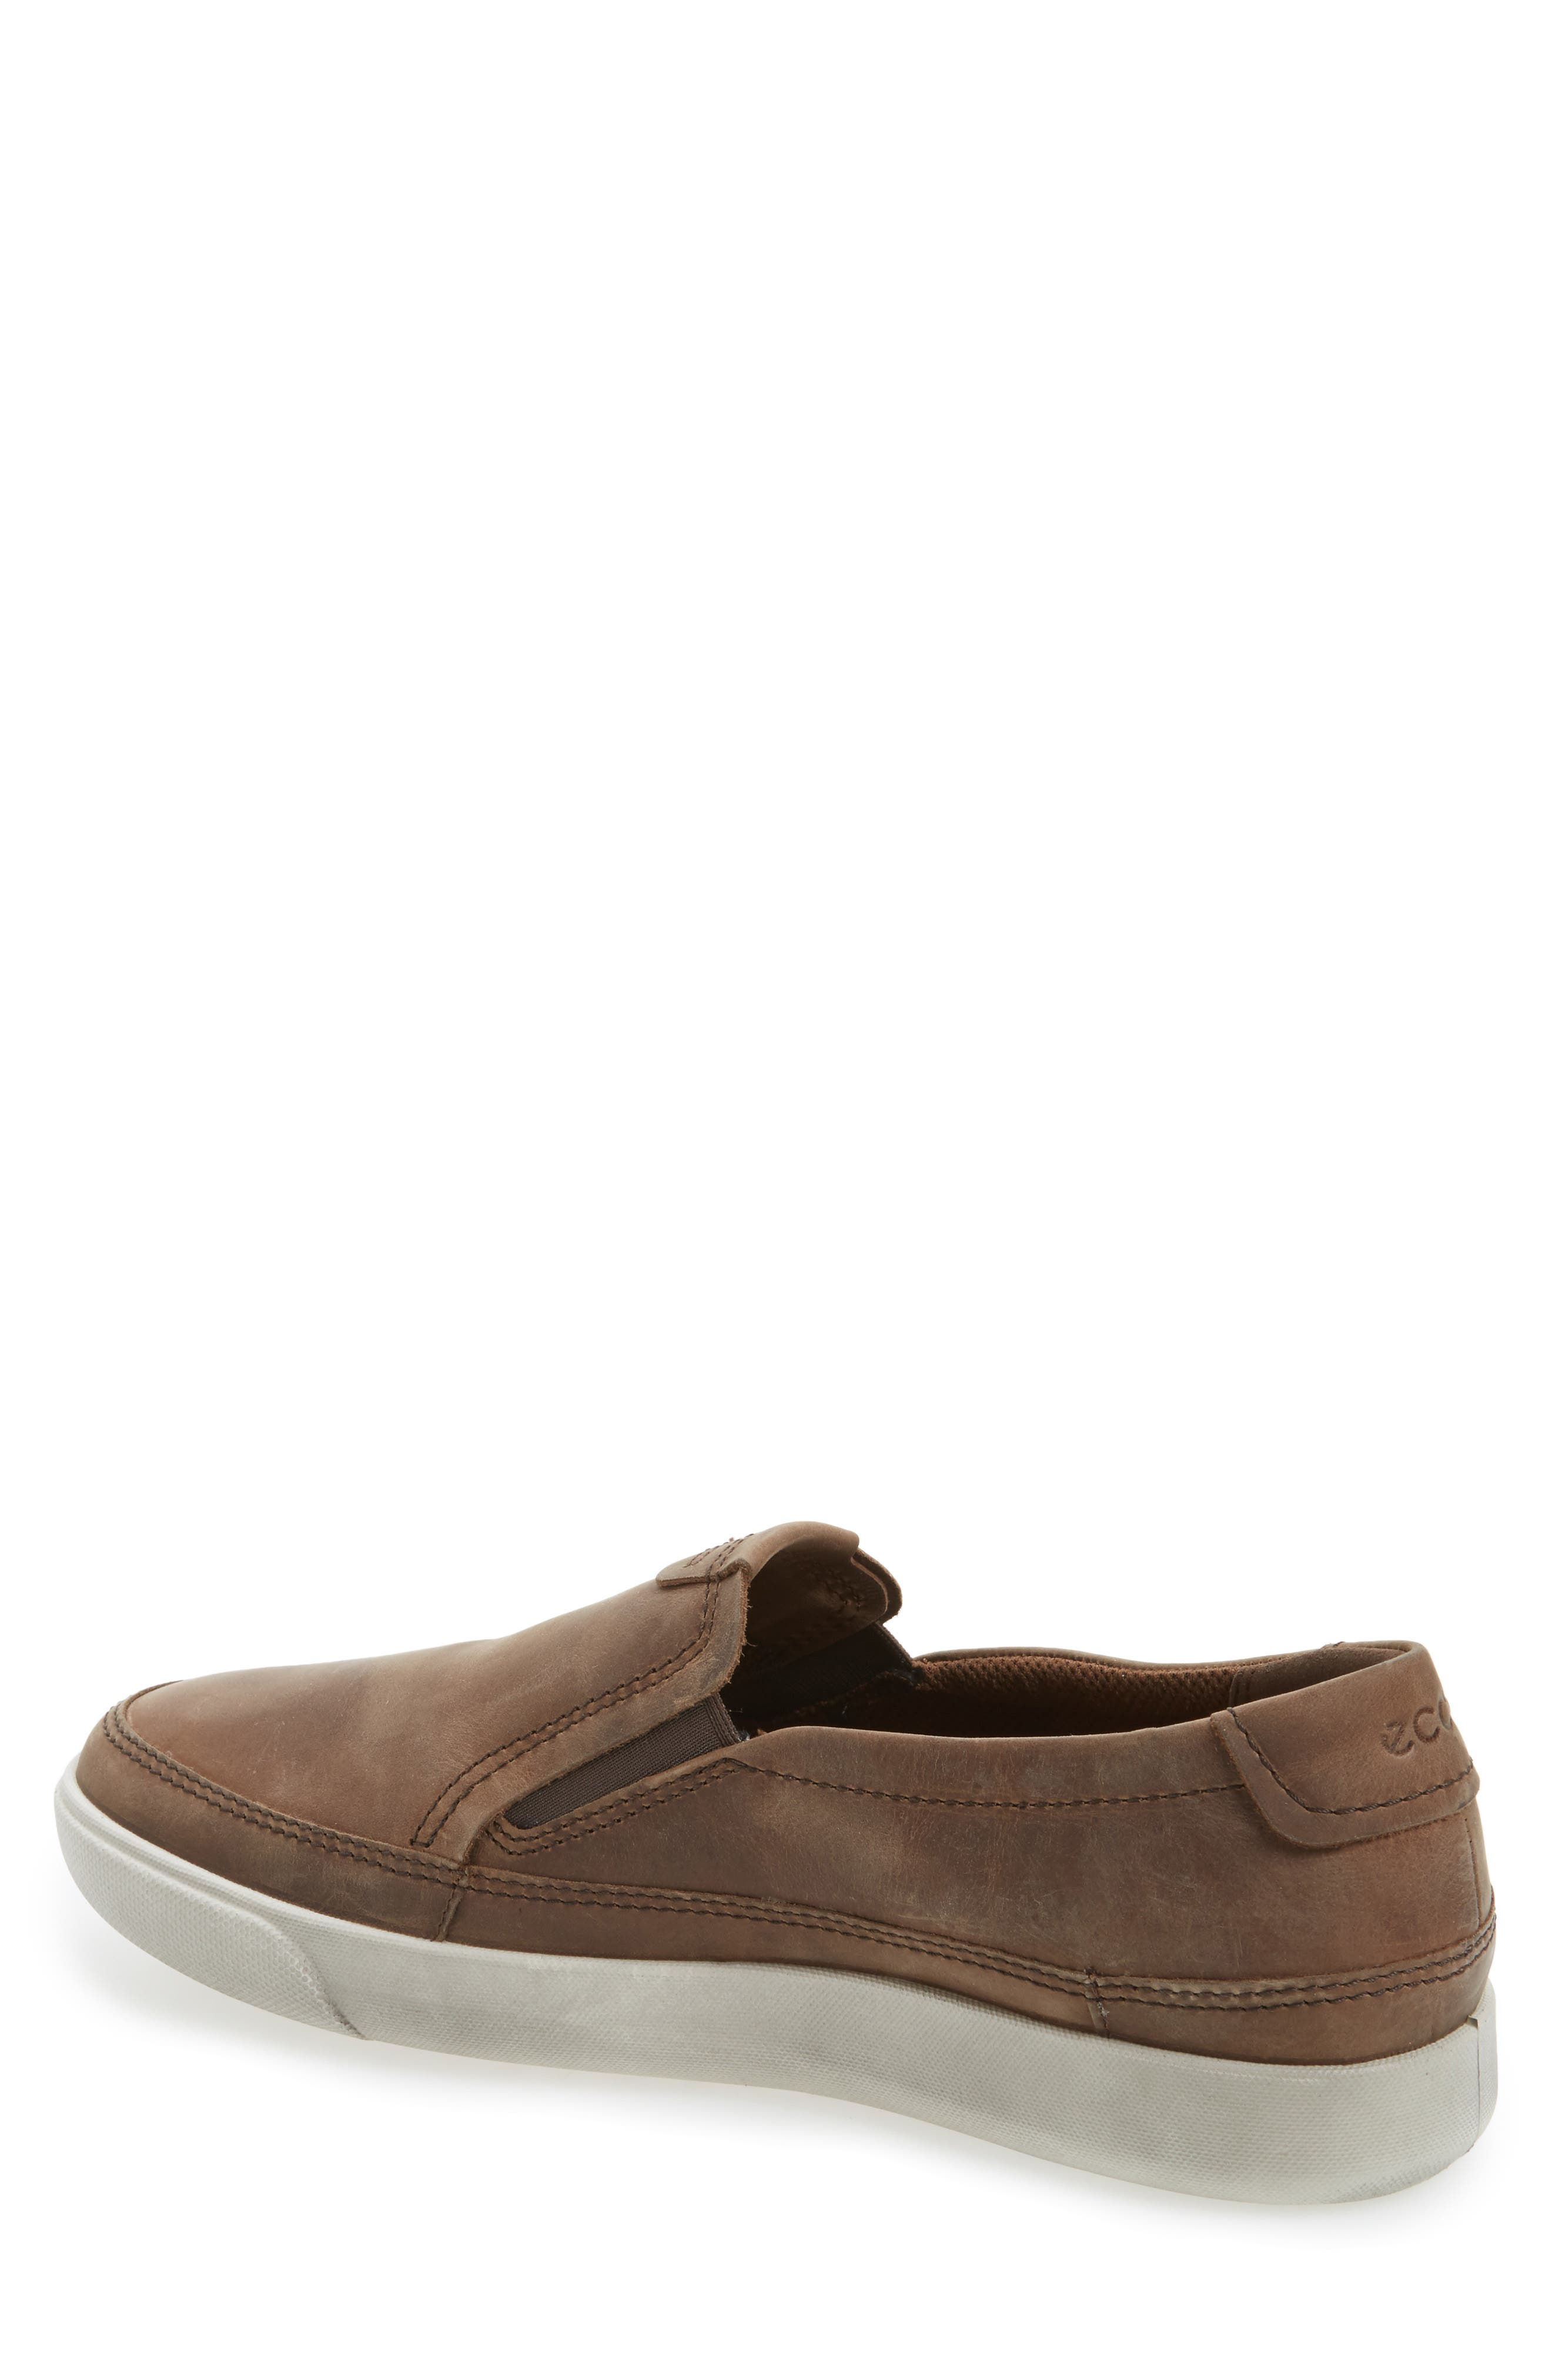 'Gary' Slip-On,                             Alternate thumbnail 2, color,                             COCOA BROWN LEATHER